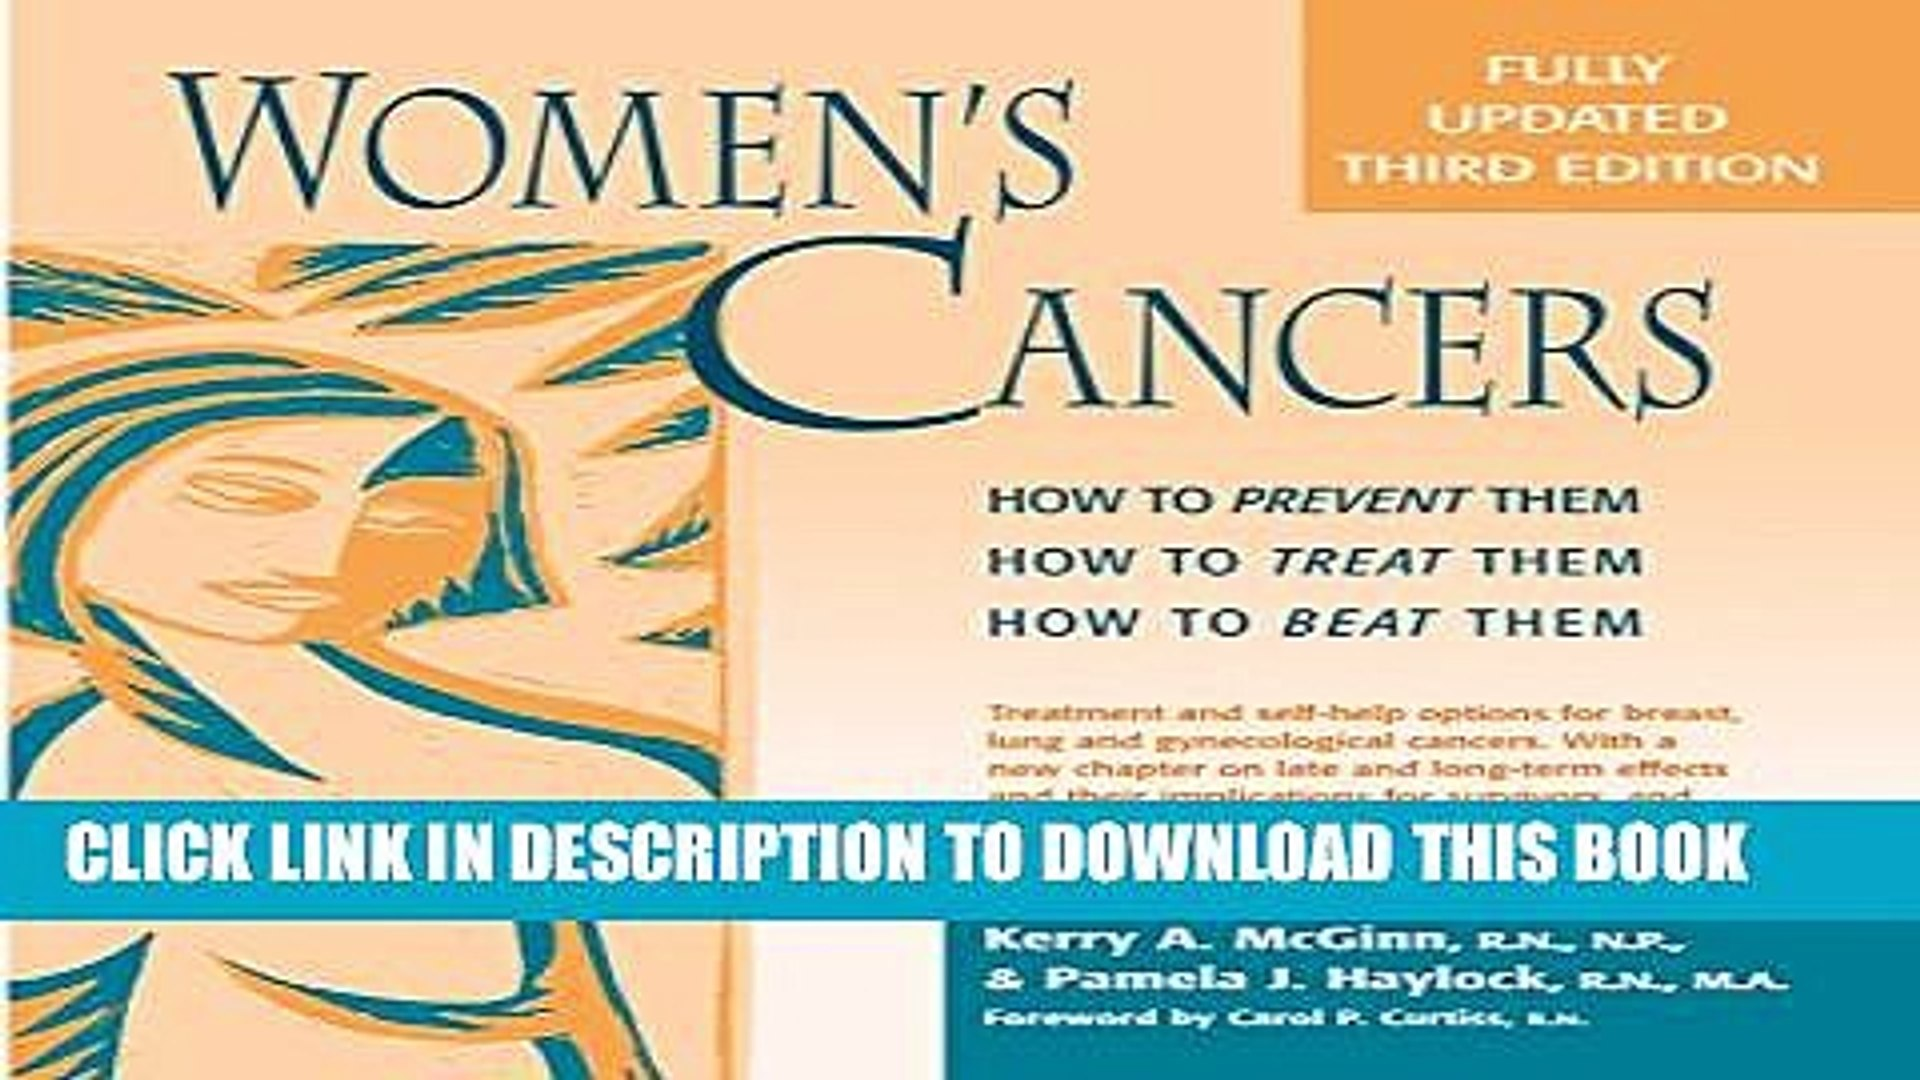 New Book Women s Cancers: How to Prevent Them, How to Treat Them, How to Beat Them (Hunter House